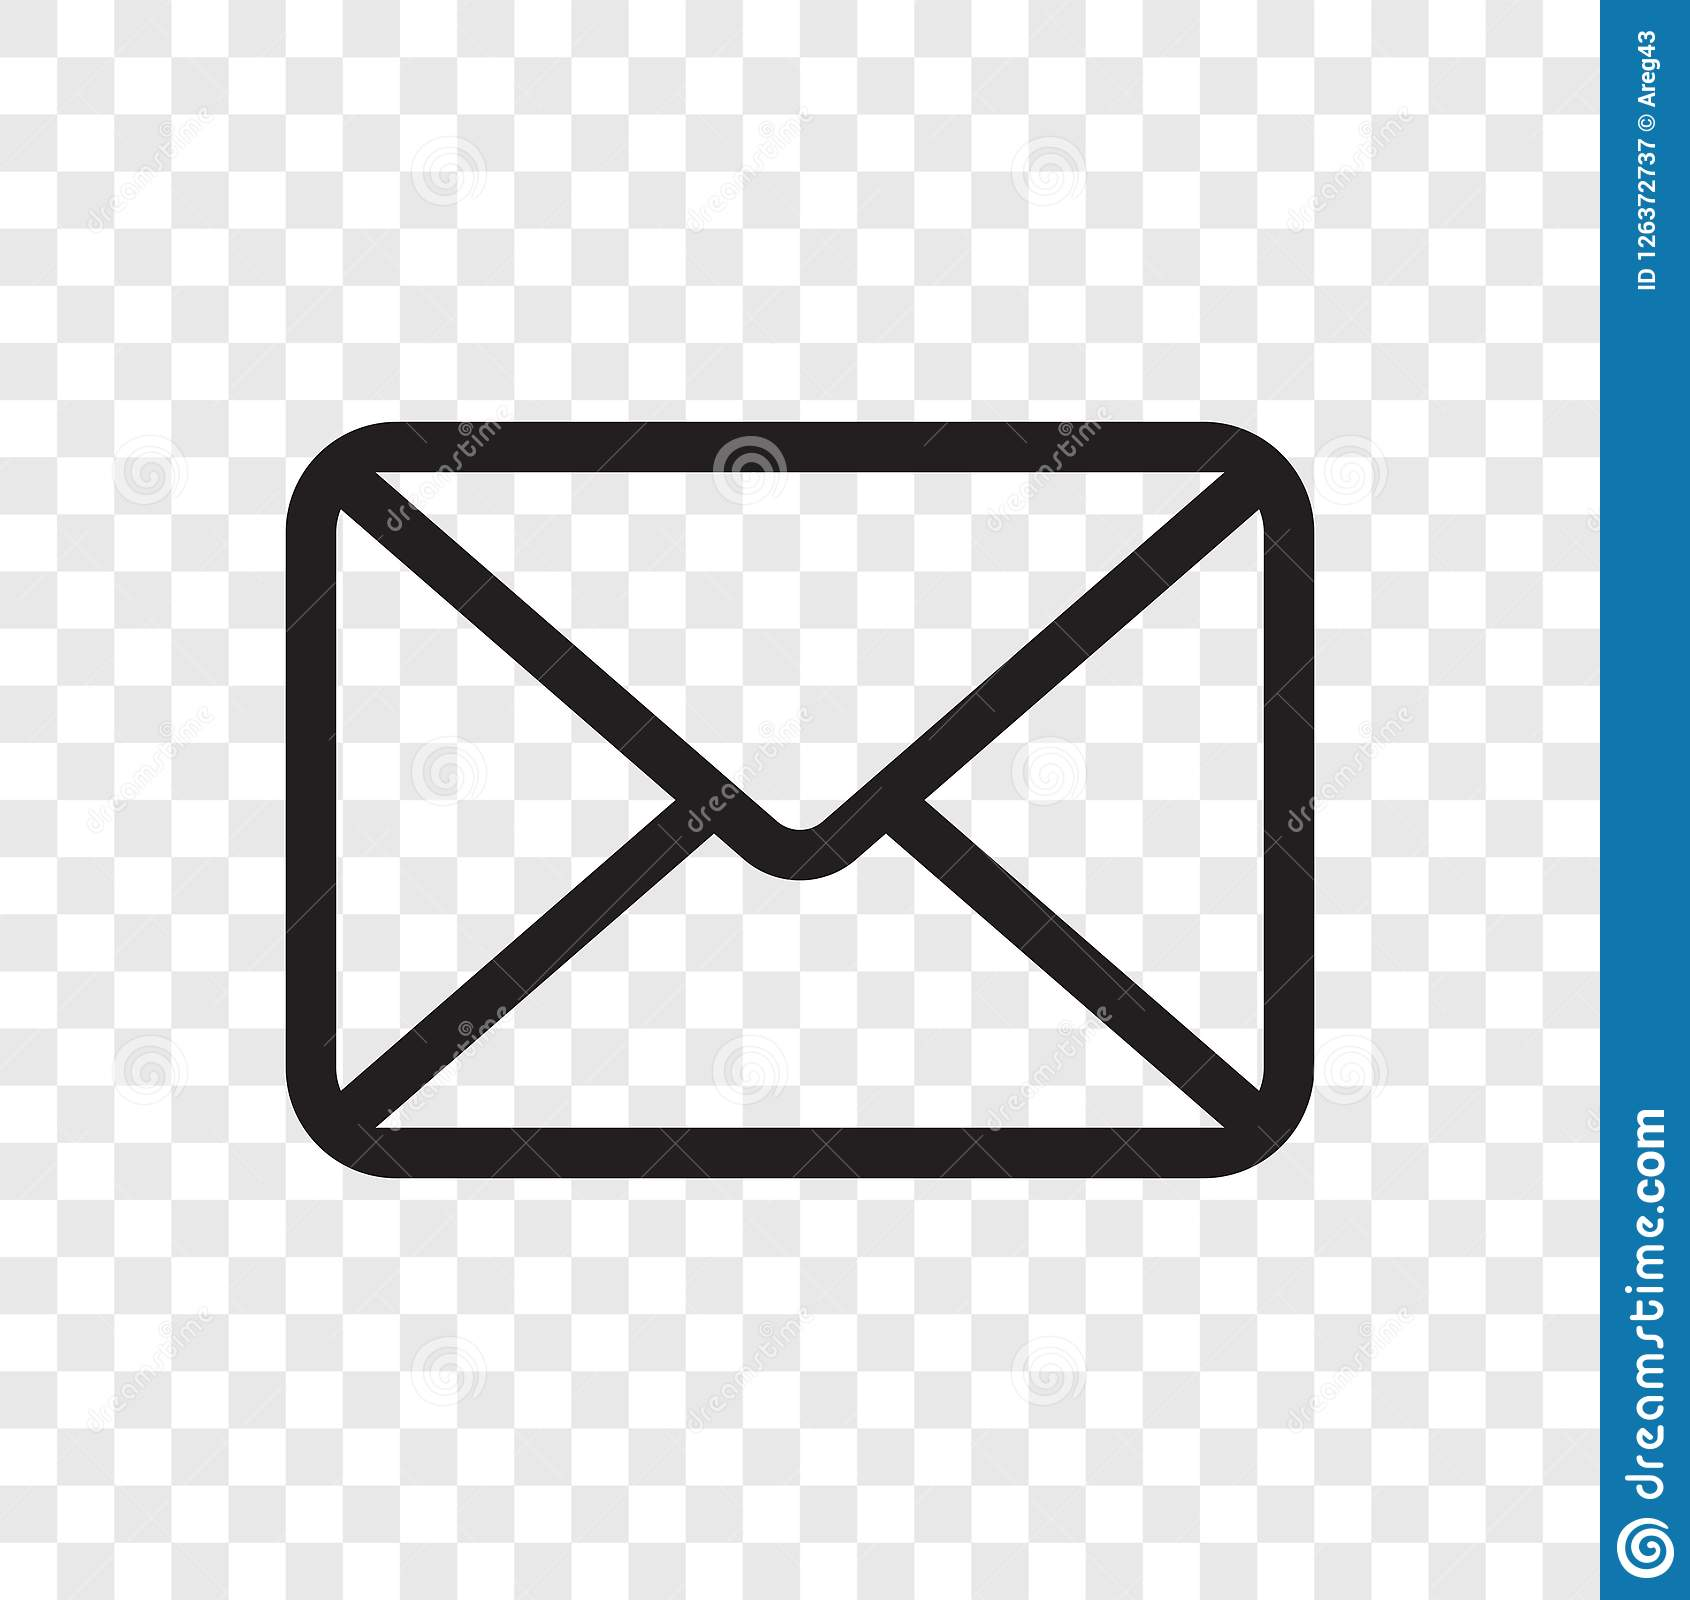 Email envelope icon. Vector mail message symbol isolated on transparent background